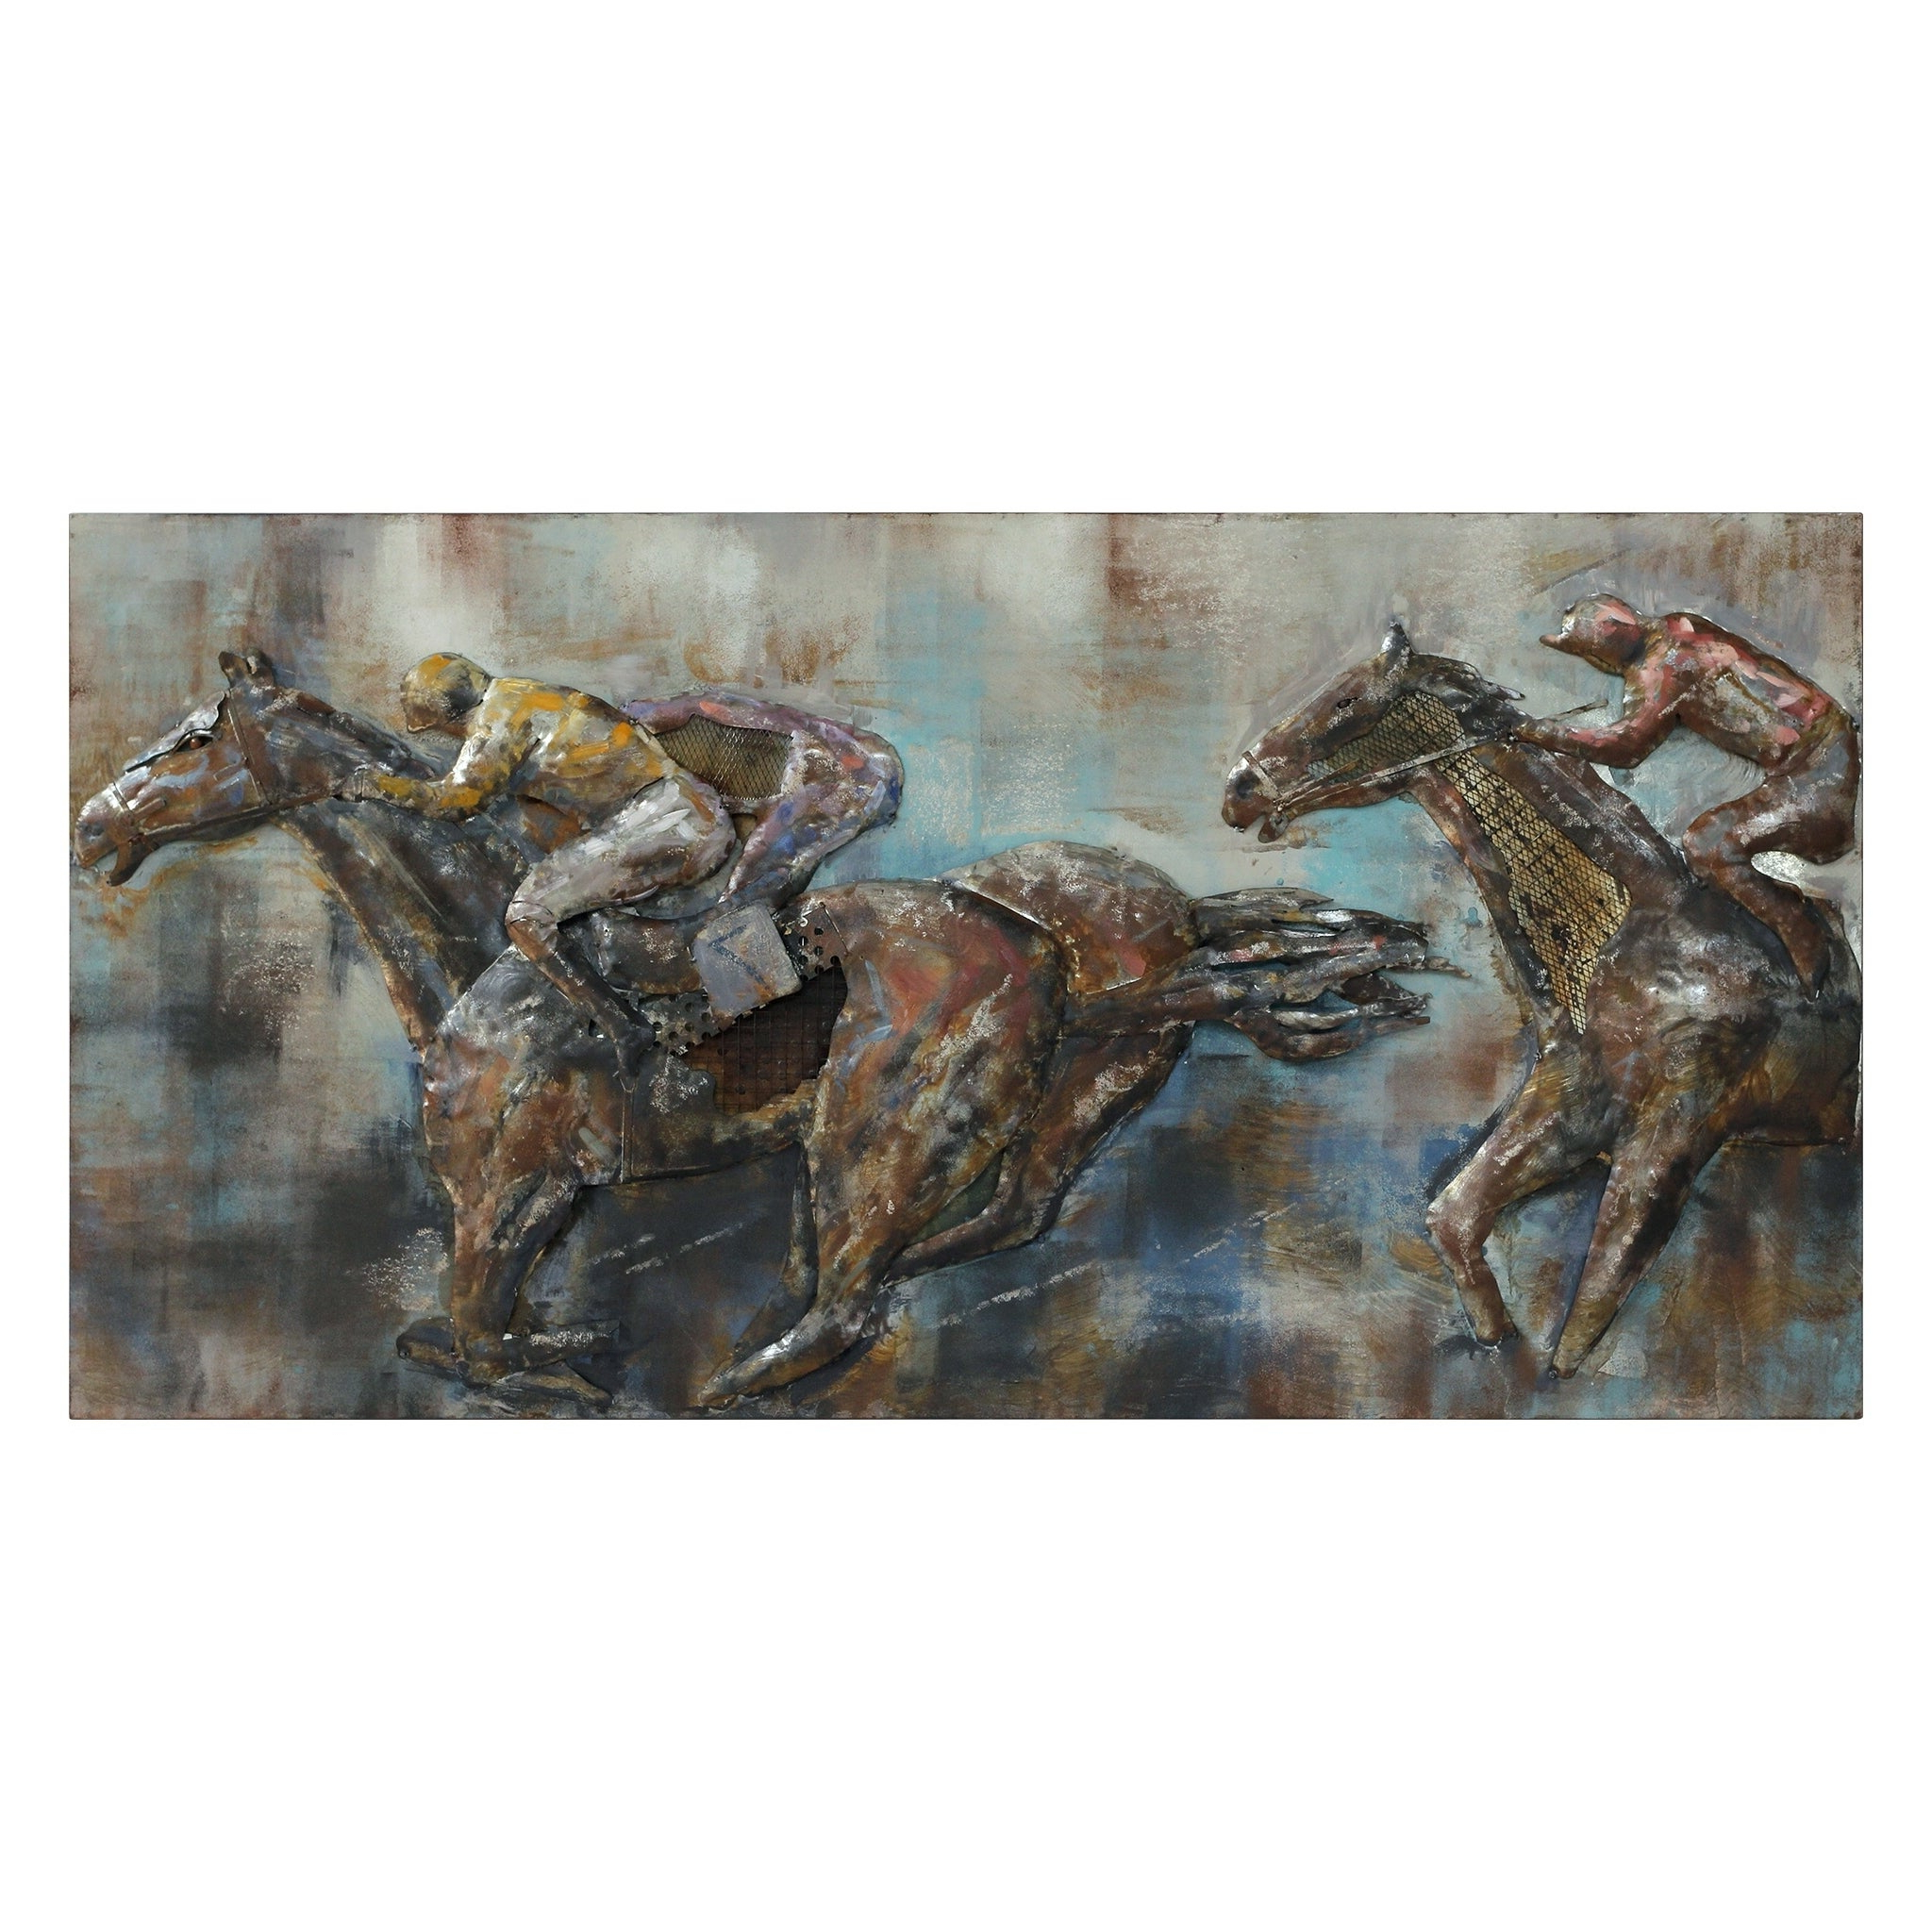 "Most Current Race Day"" Mixed Media Iron Hand Painted Dimensional Wall Décor Within Mixed Media Iron Hand Painted Dimensional Wall Decor (View 14 of 20)"